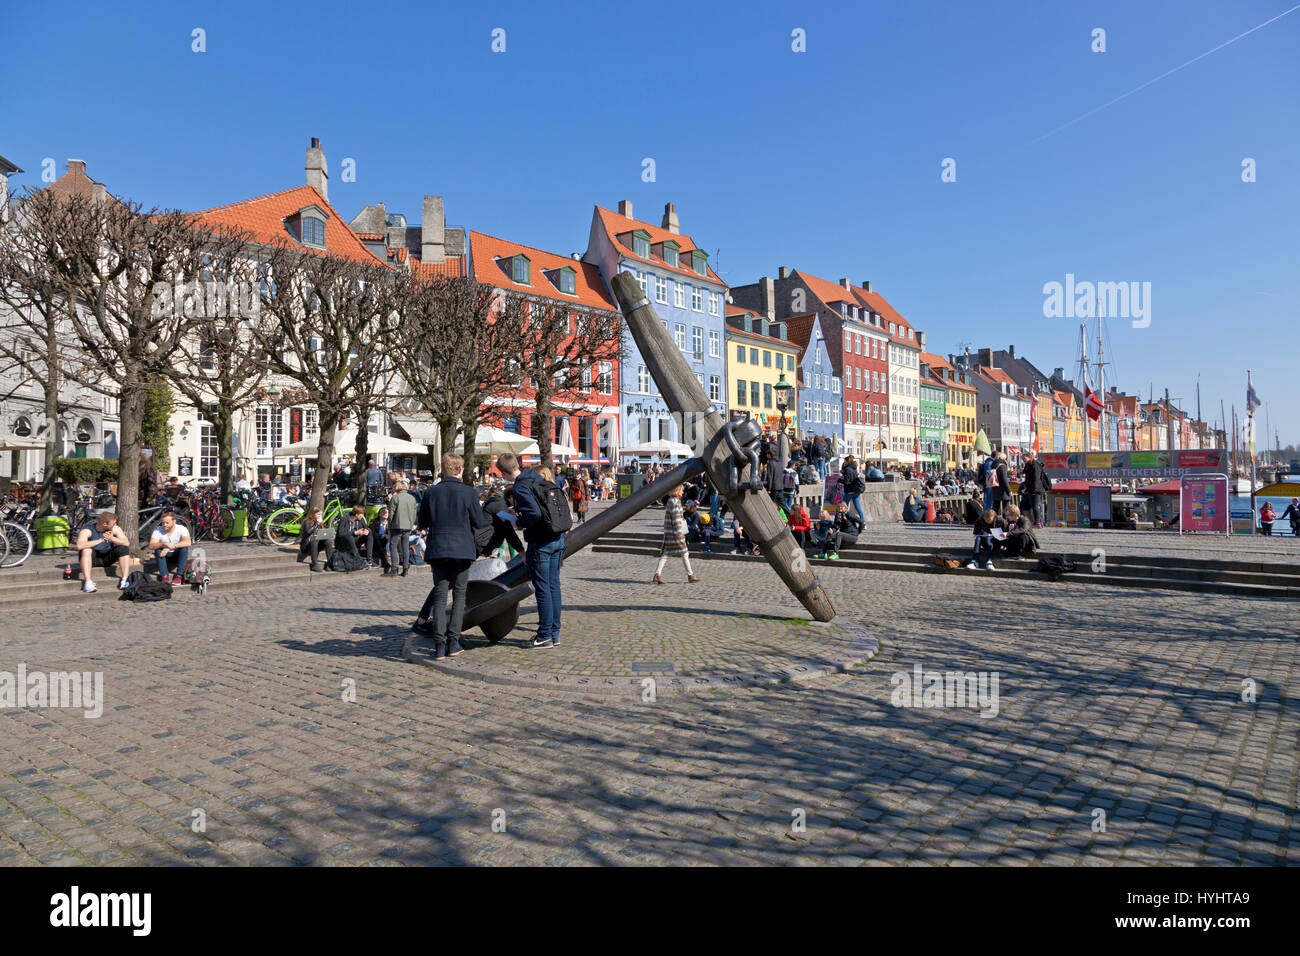 Students at the Memorial Ancher in Nyhavn, Copenhagen, on a sunny day in early April. Nyhavn is a popular urban - Stock Image